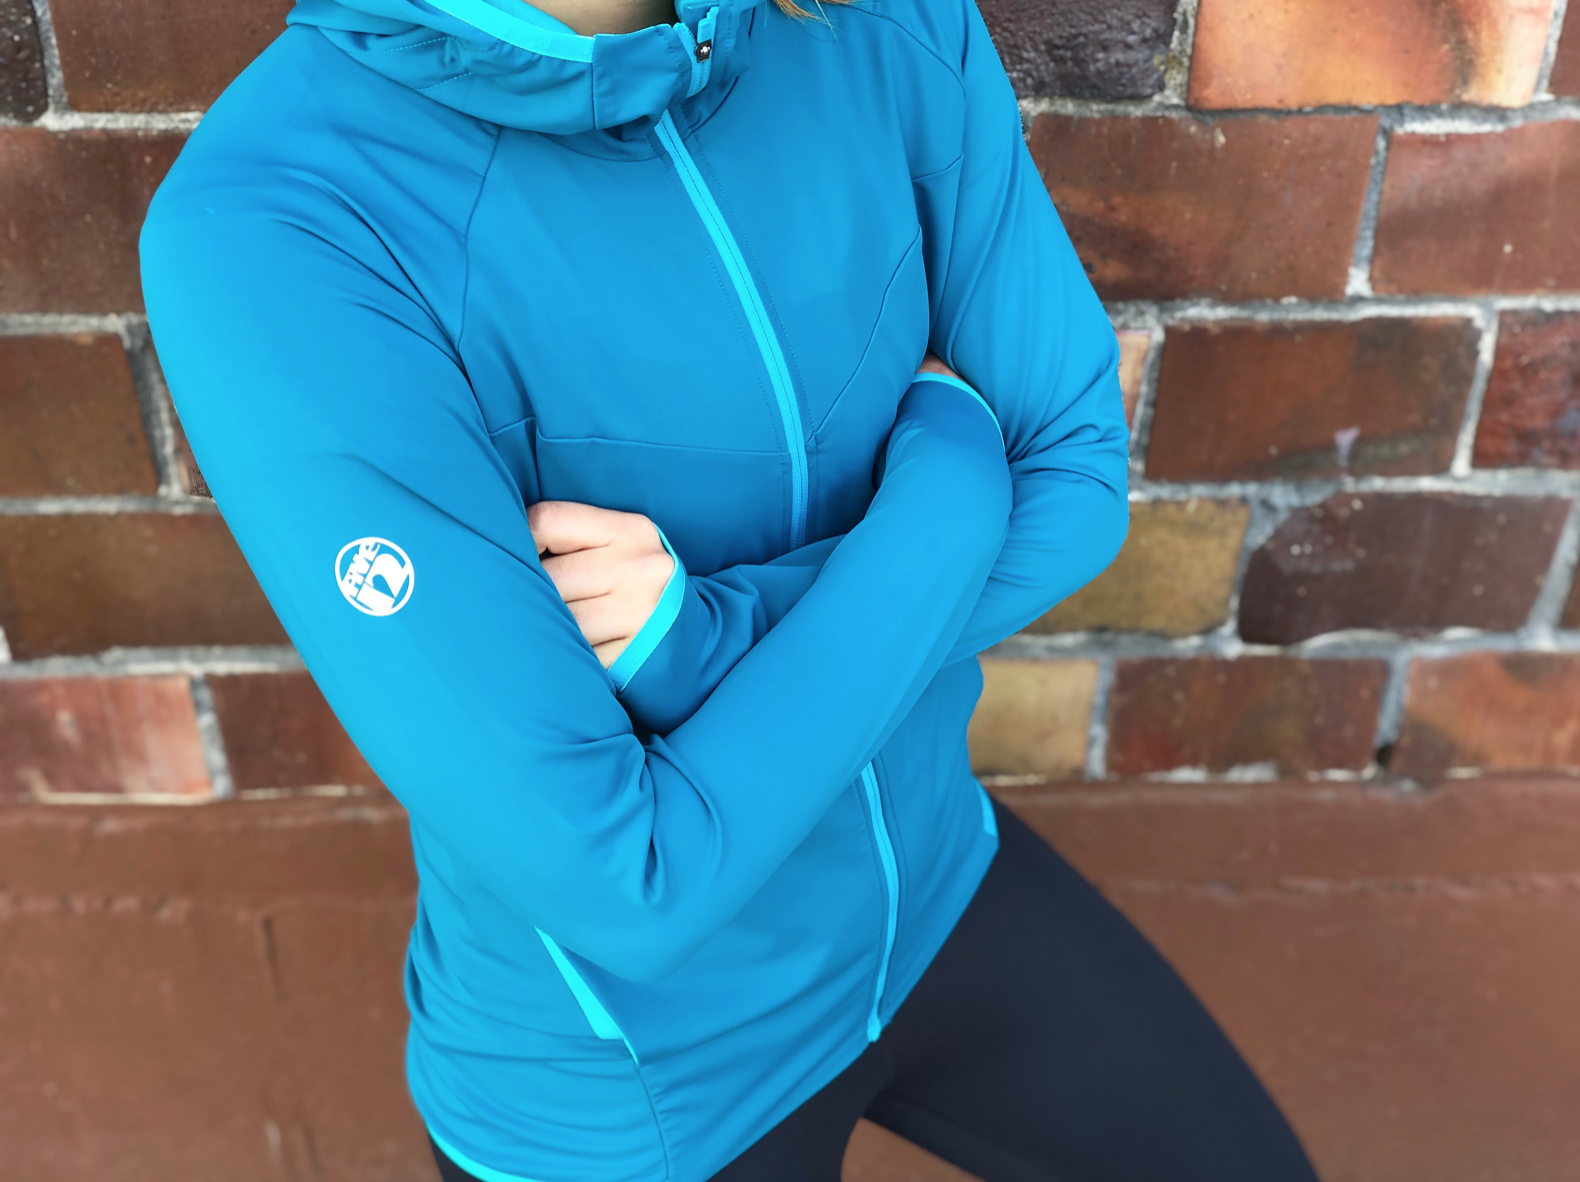 "Five12 Apparel, the first-of-its-kind sustainable activewear line created with 100 percent recycled, post-consumable materials, just announced their first Kickstarter campaign. The PNW brand is hoping to raise $10K by April 2nd to fund a new ""OC (Ocean Cleanup) Collection,'' made entirely from discarded ghost fishing nets and recovered ocean plastics. More info on Five12 and the kickstarter{&nbsp;}<a  href=""https://www.kickstarter.com/projects/five12/sustainable-apparel-from-recycled-ghost-nets"" target=""_blank"" title=""https://www.kickstarter.com/projects/five12/sustainable-apparel-from-recycled-ghost-nets"">online</a>. (Photo credit: Five12 Apparel)"